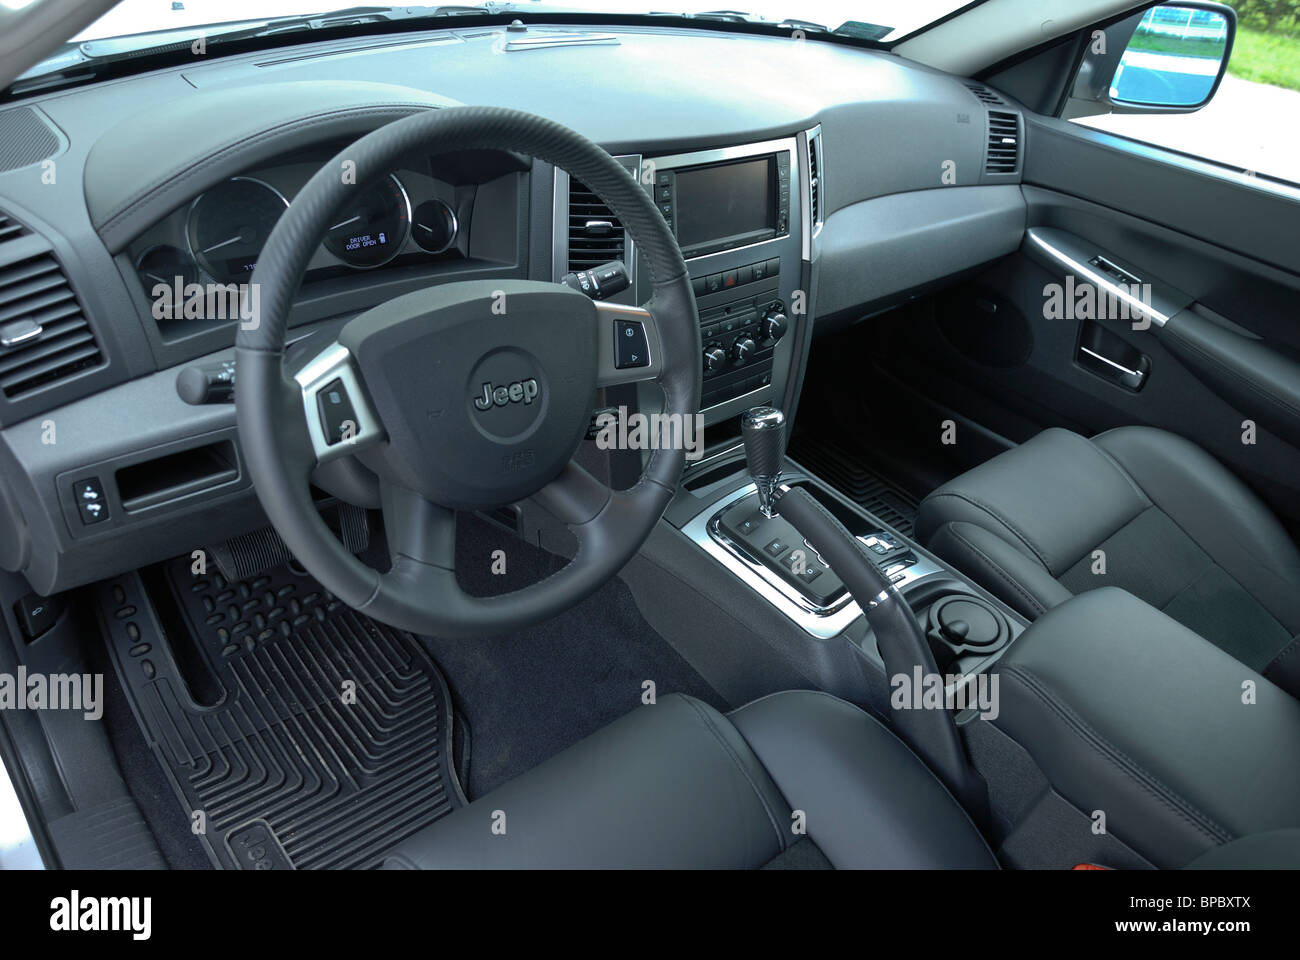 2005 jeep grand cherokee interior pictures. Black Bedroom Furniture Sets. Home Design Ideas